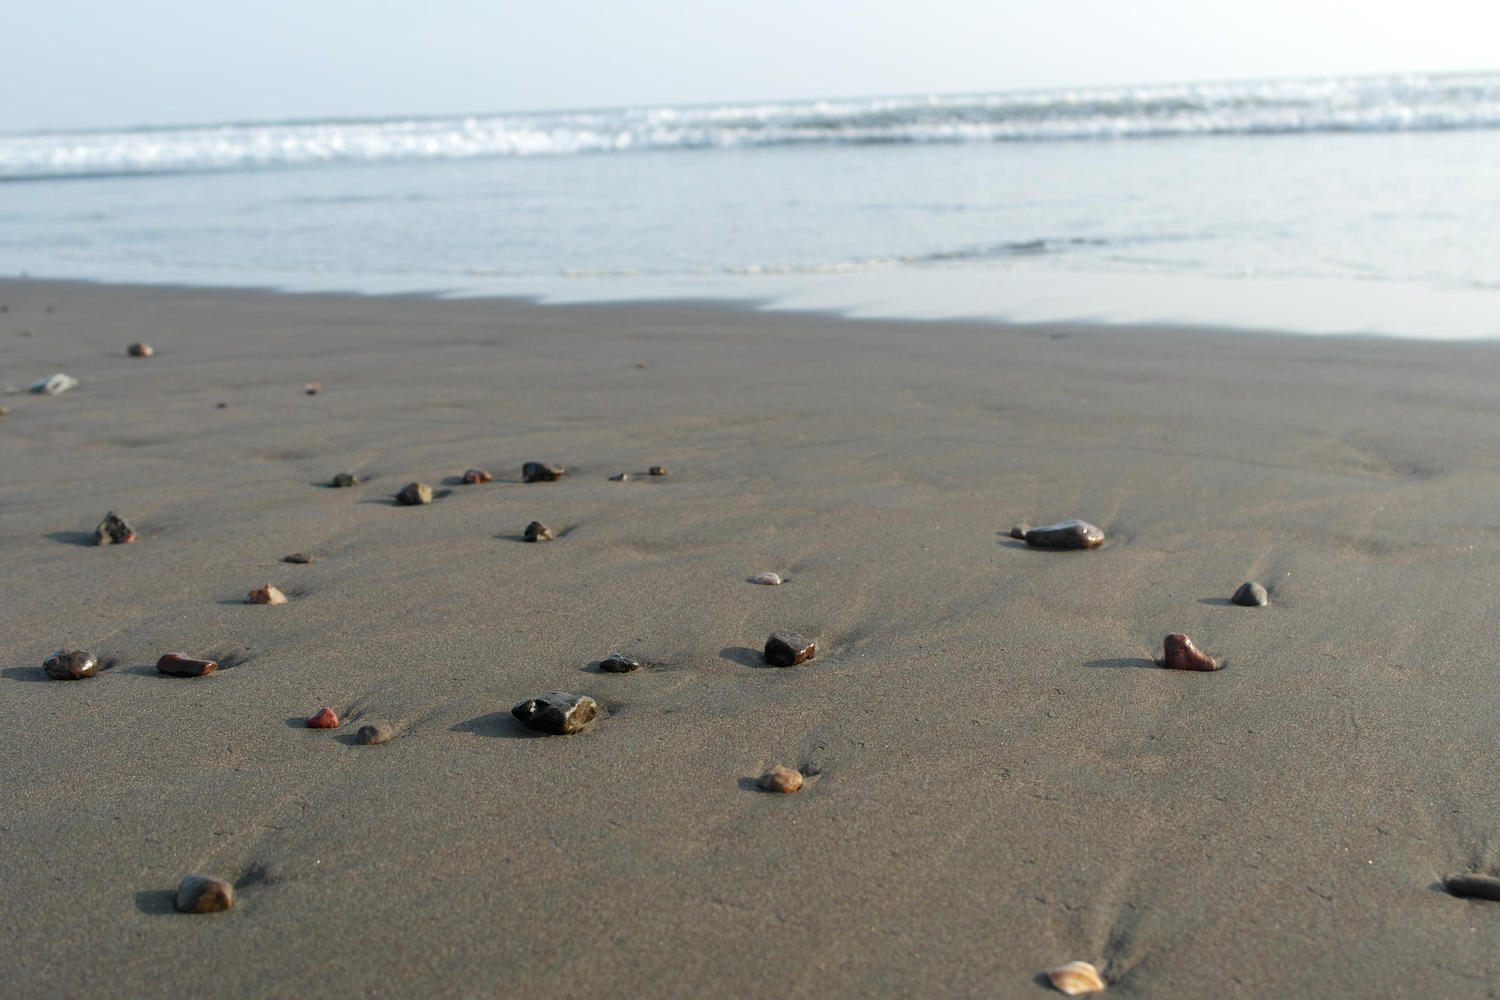 Pebbles on Ostional beach, Nicoya Peninsula